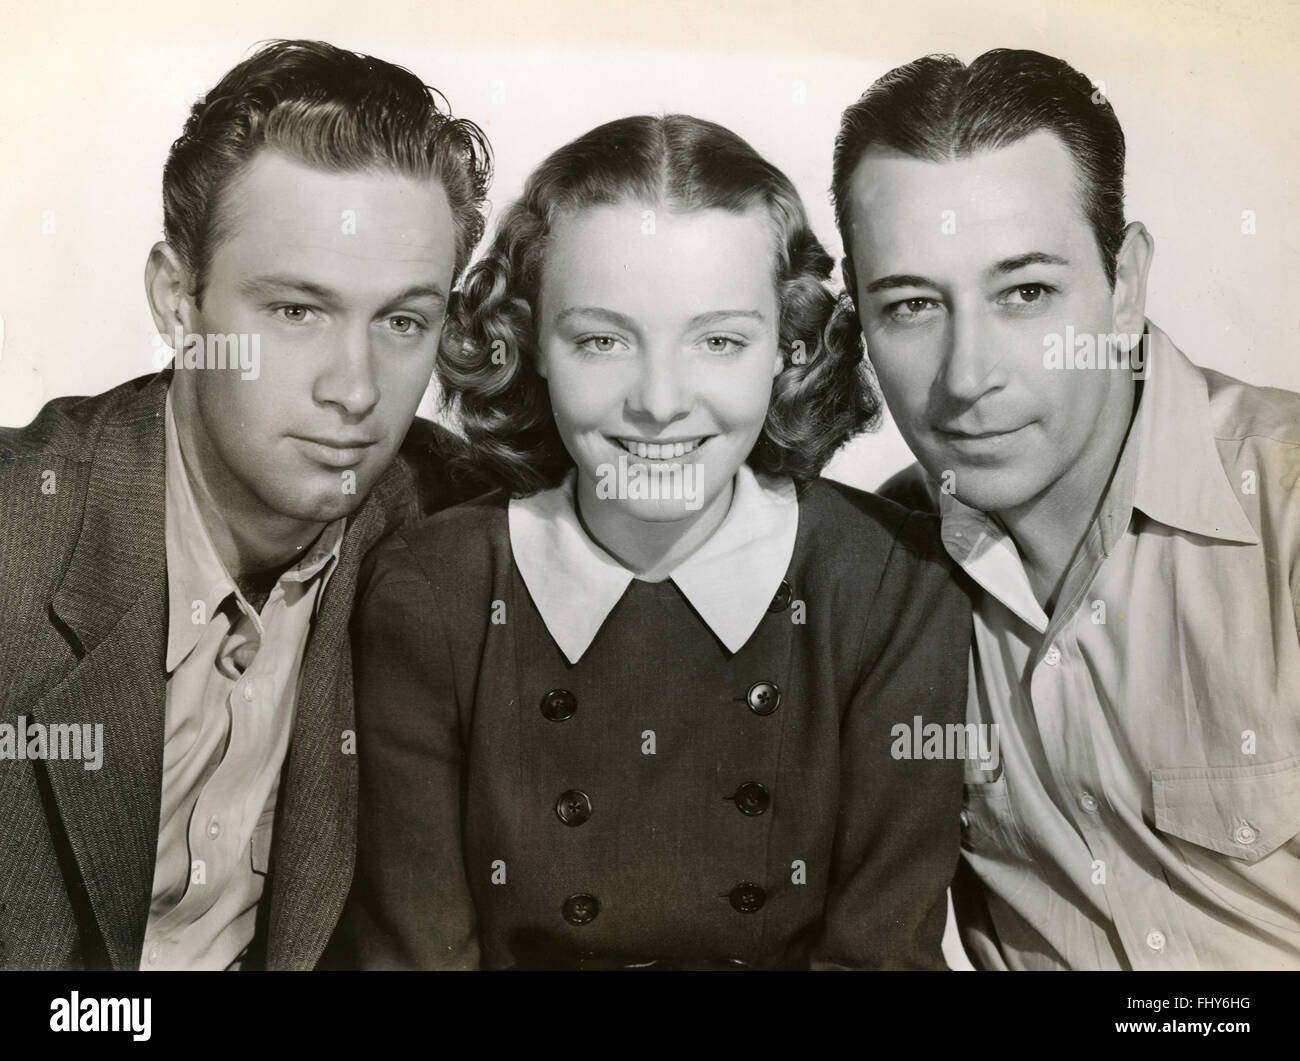 Actors of the film Invisible Stripes, USA 1939 - Stock Image